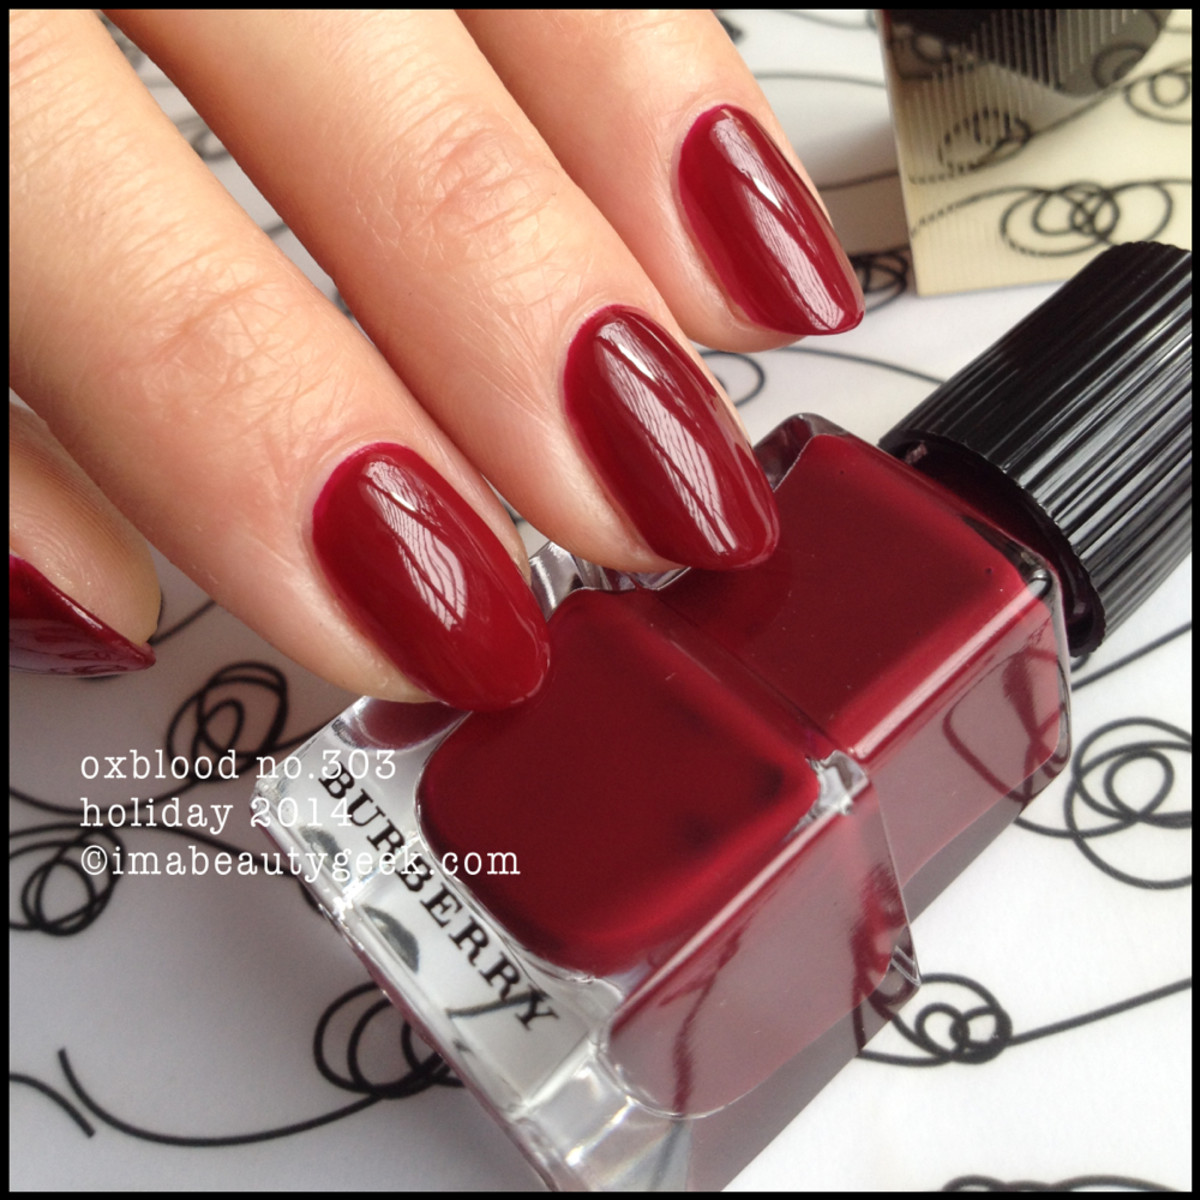 Burberry Oxblood 303 Nail Polish Holiday 2014